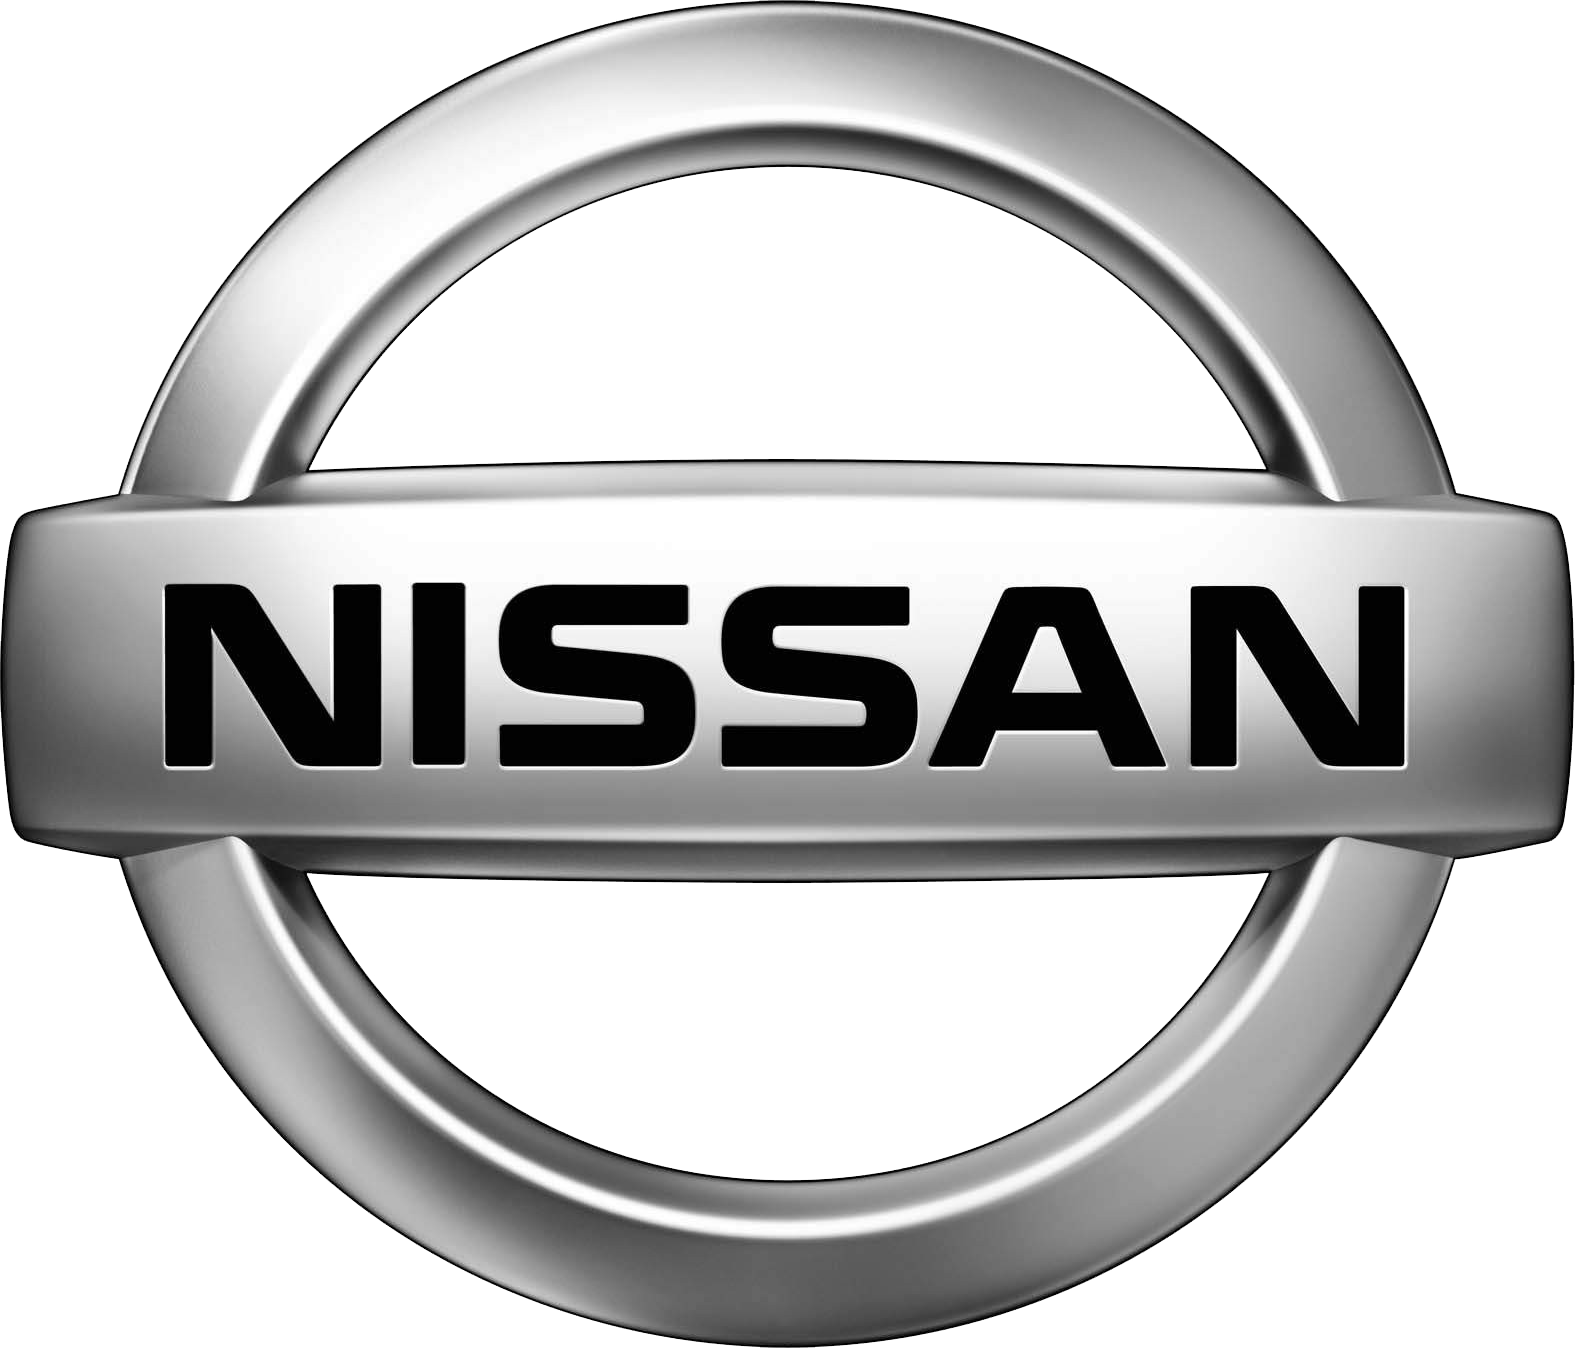 Why Buy a Used Nissan?